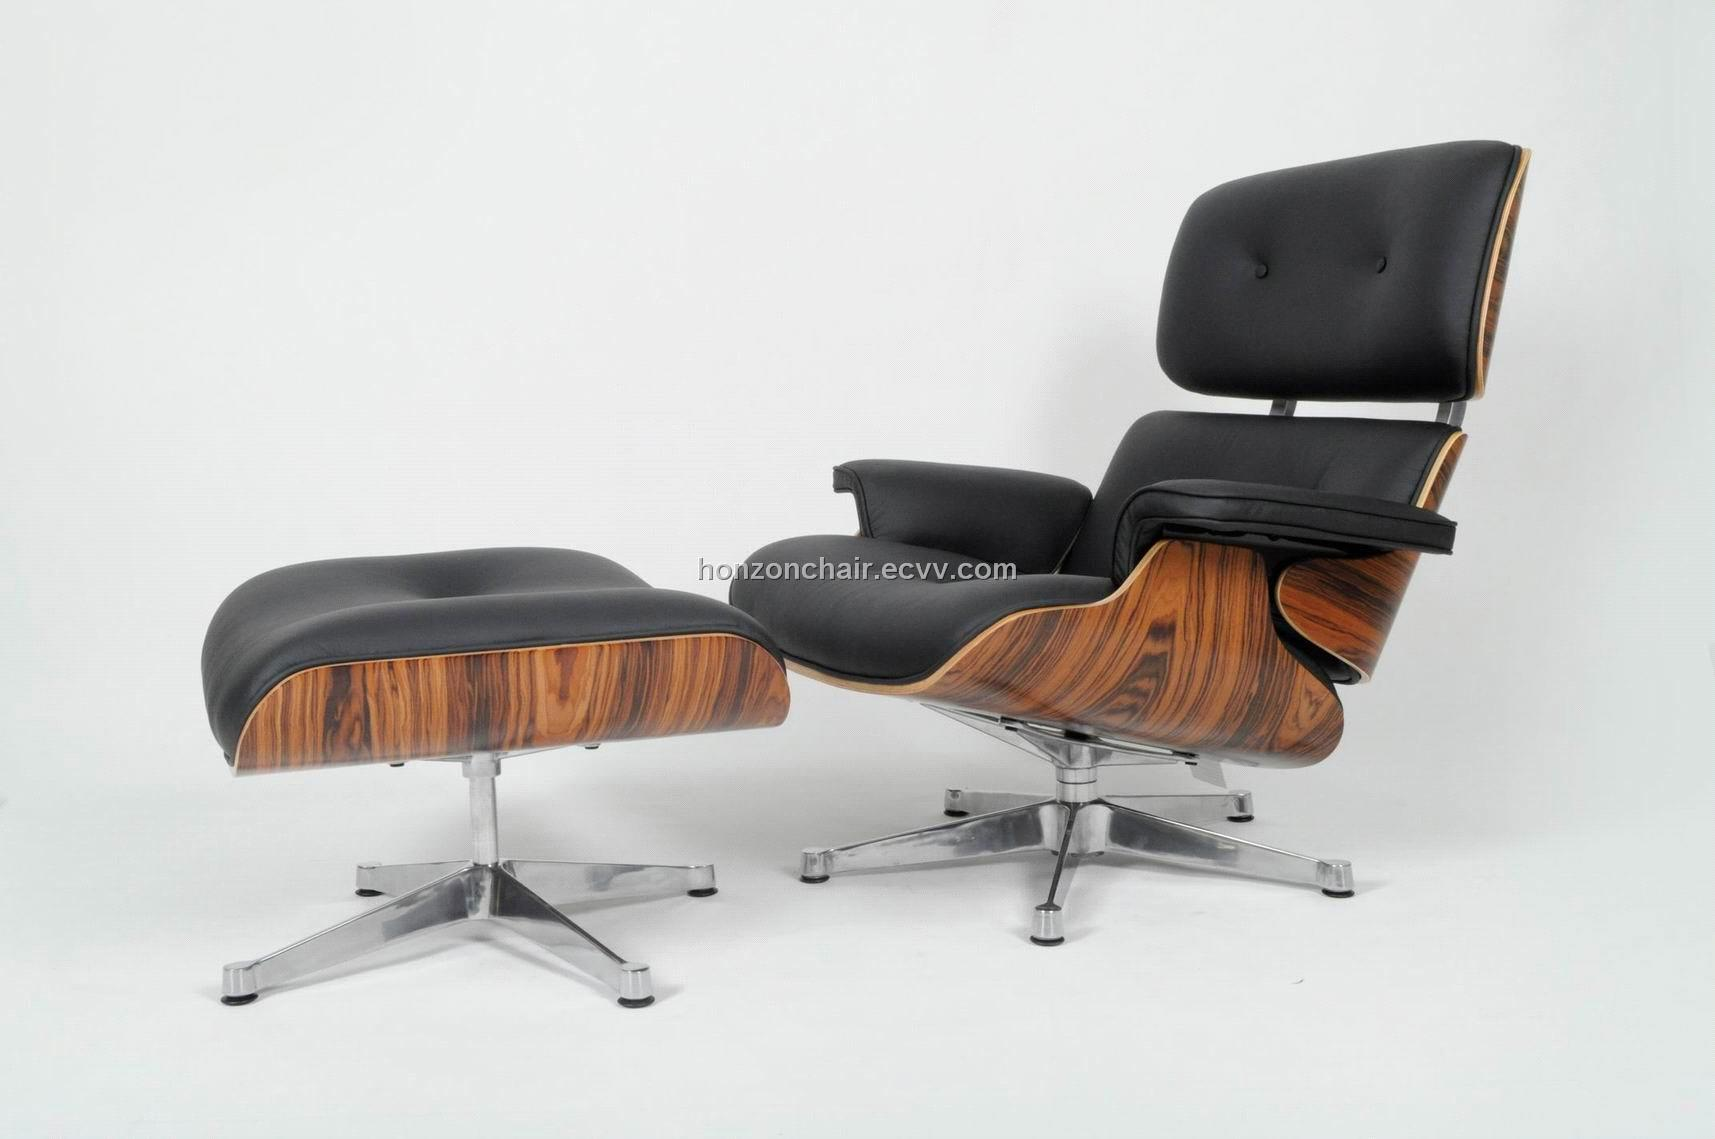 armchairs lounge reproduction chairs product ottoman eames set and occasional replica chair blk